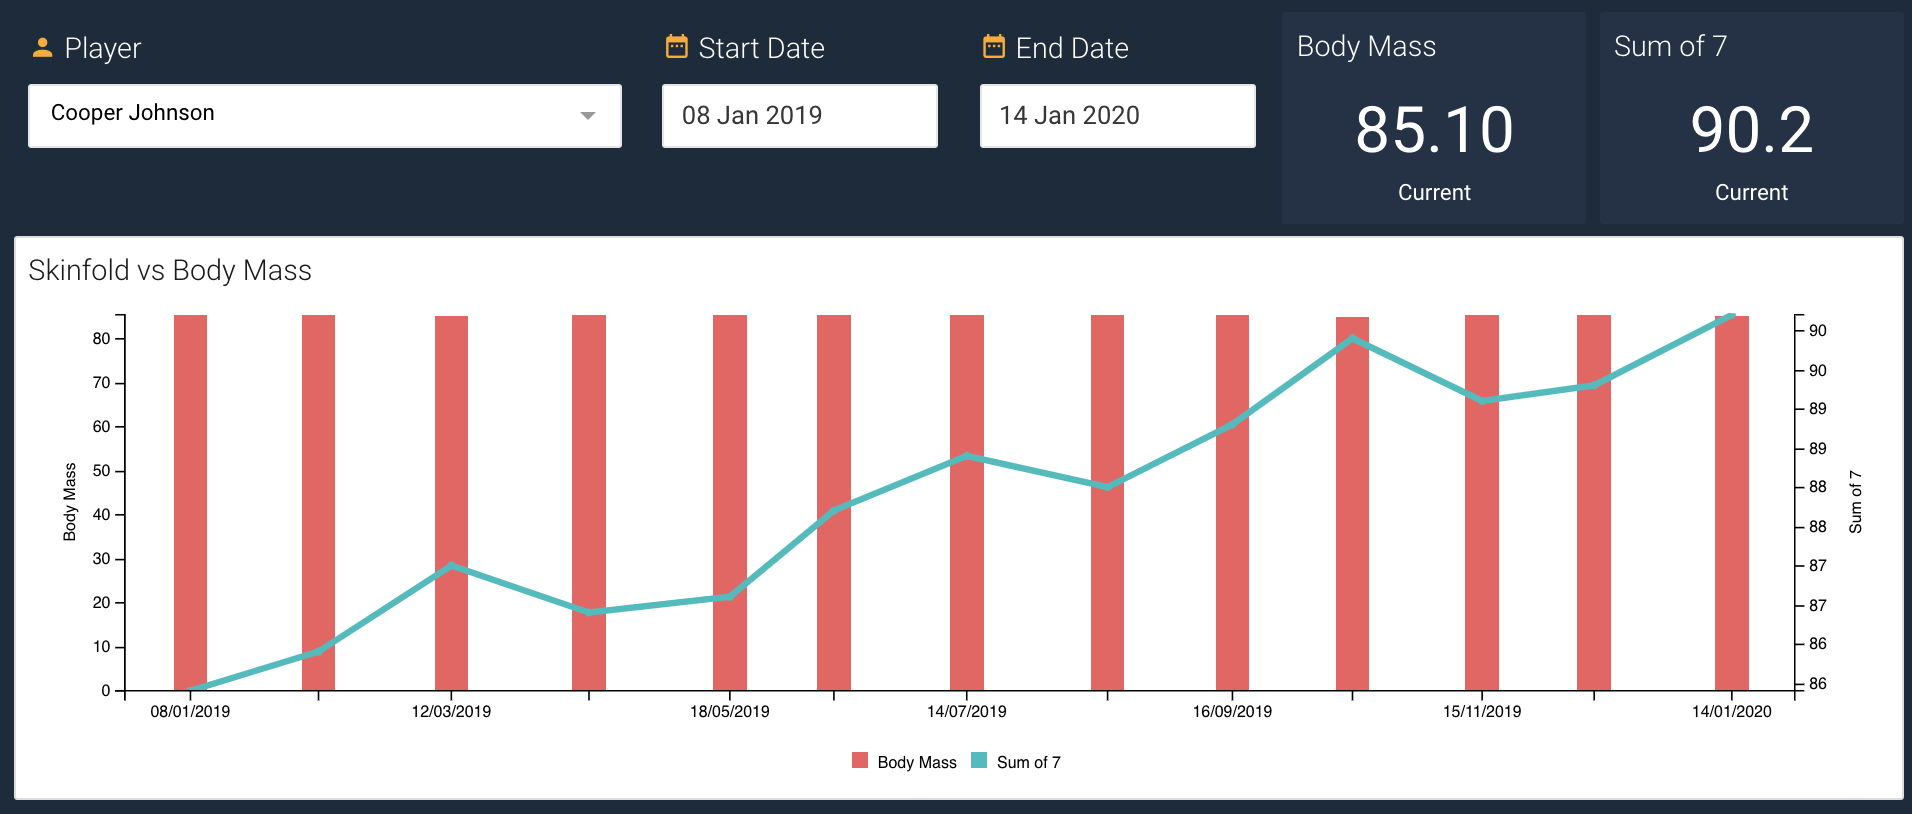 A screenshot showing an example of a time series chart displaying skinfold and body mass data